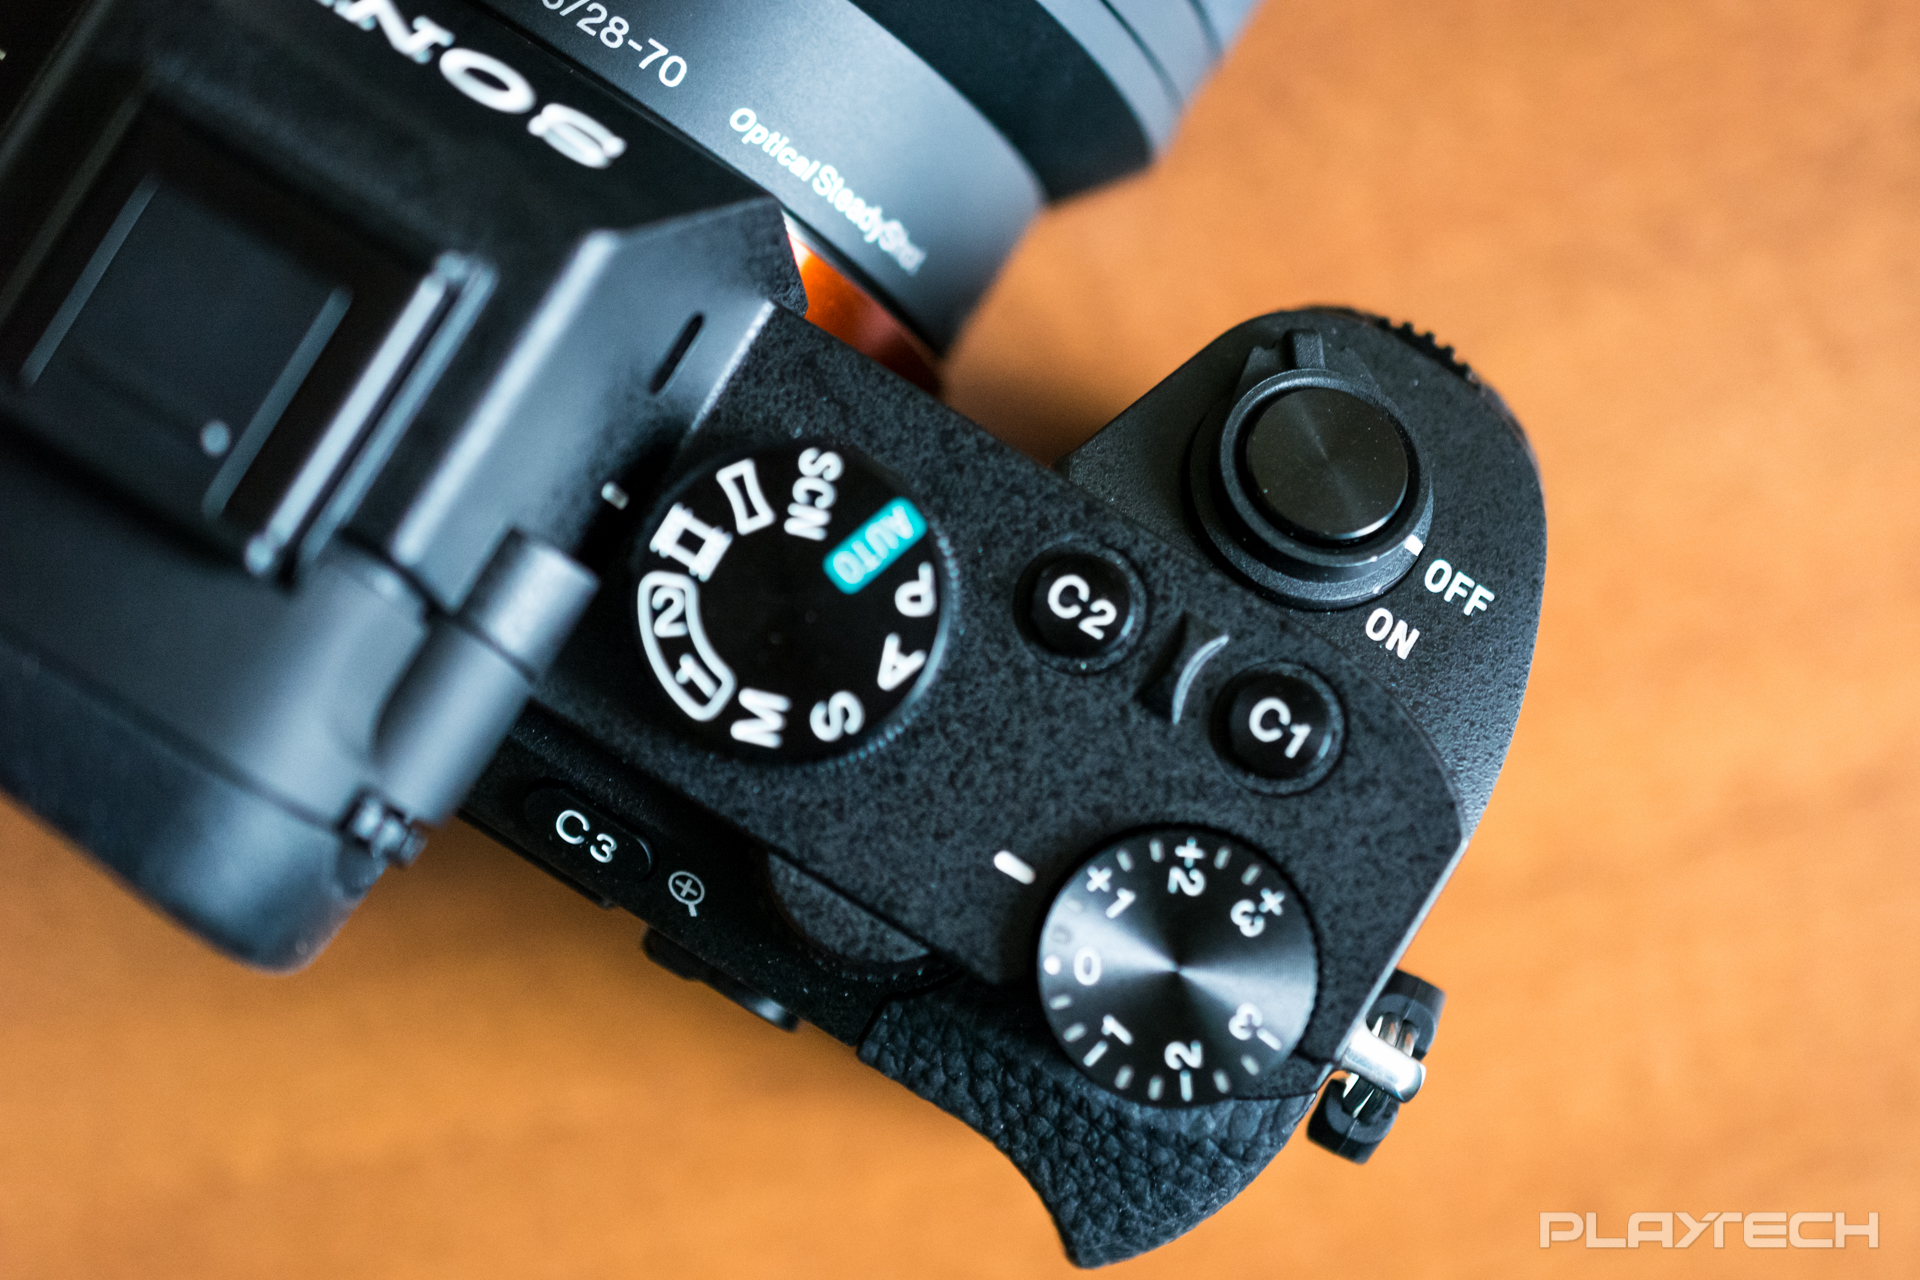 Sony Alpha A7 mark II playtech-0766